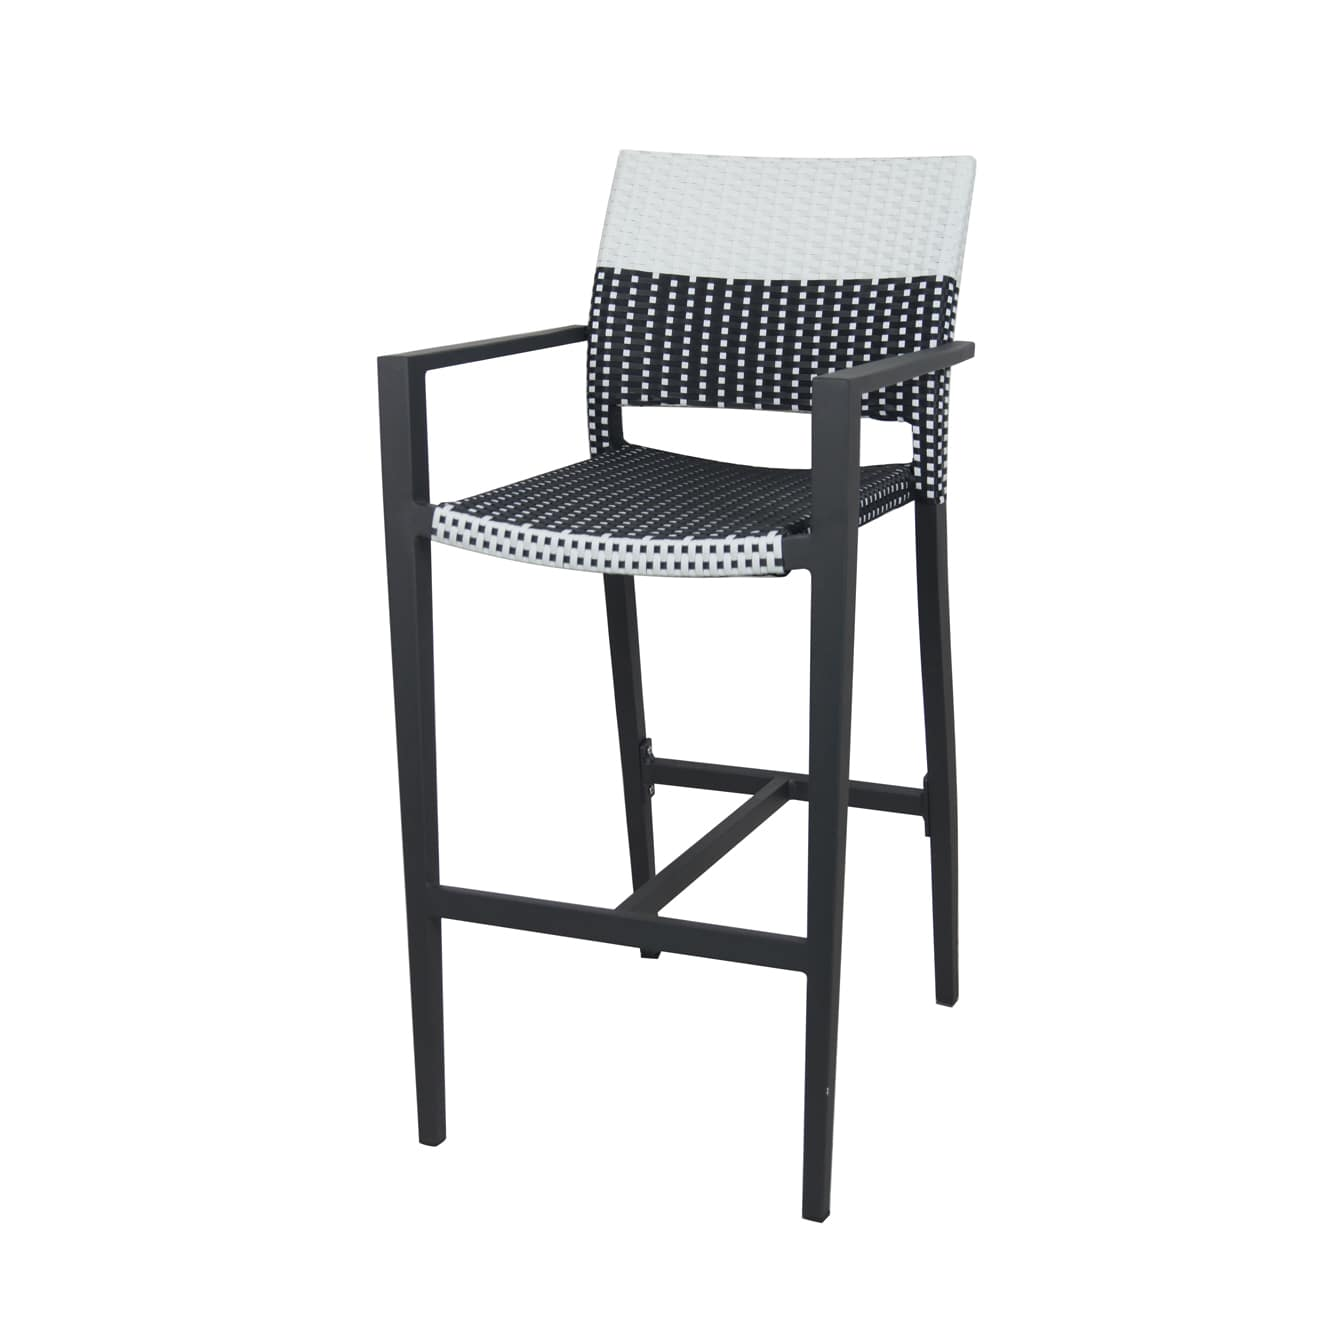 Source Furniture Source Furniture Chloe Bar Arm Chair Bar Arm Chair - Rattan Imports